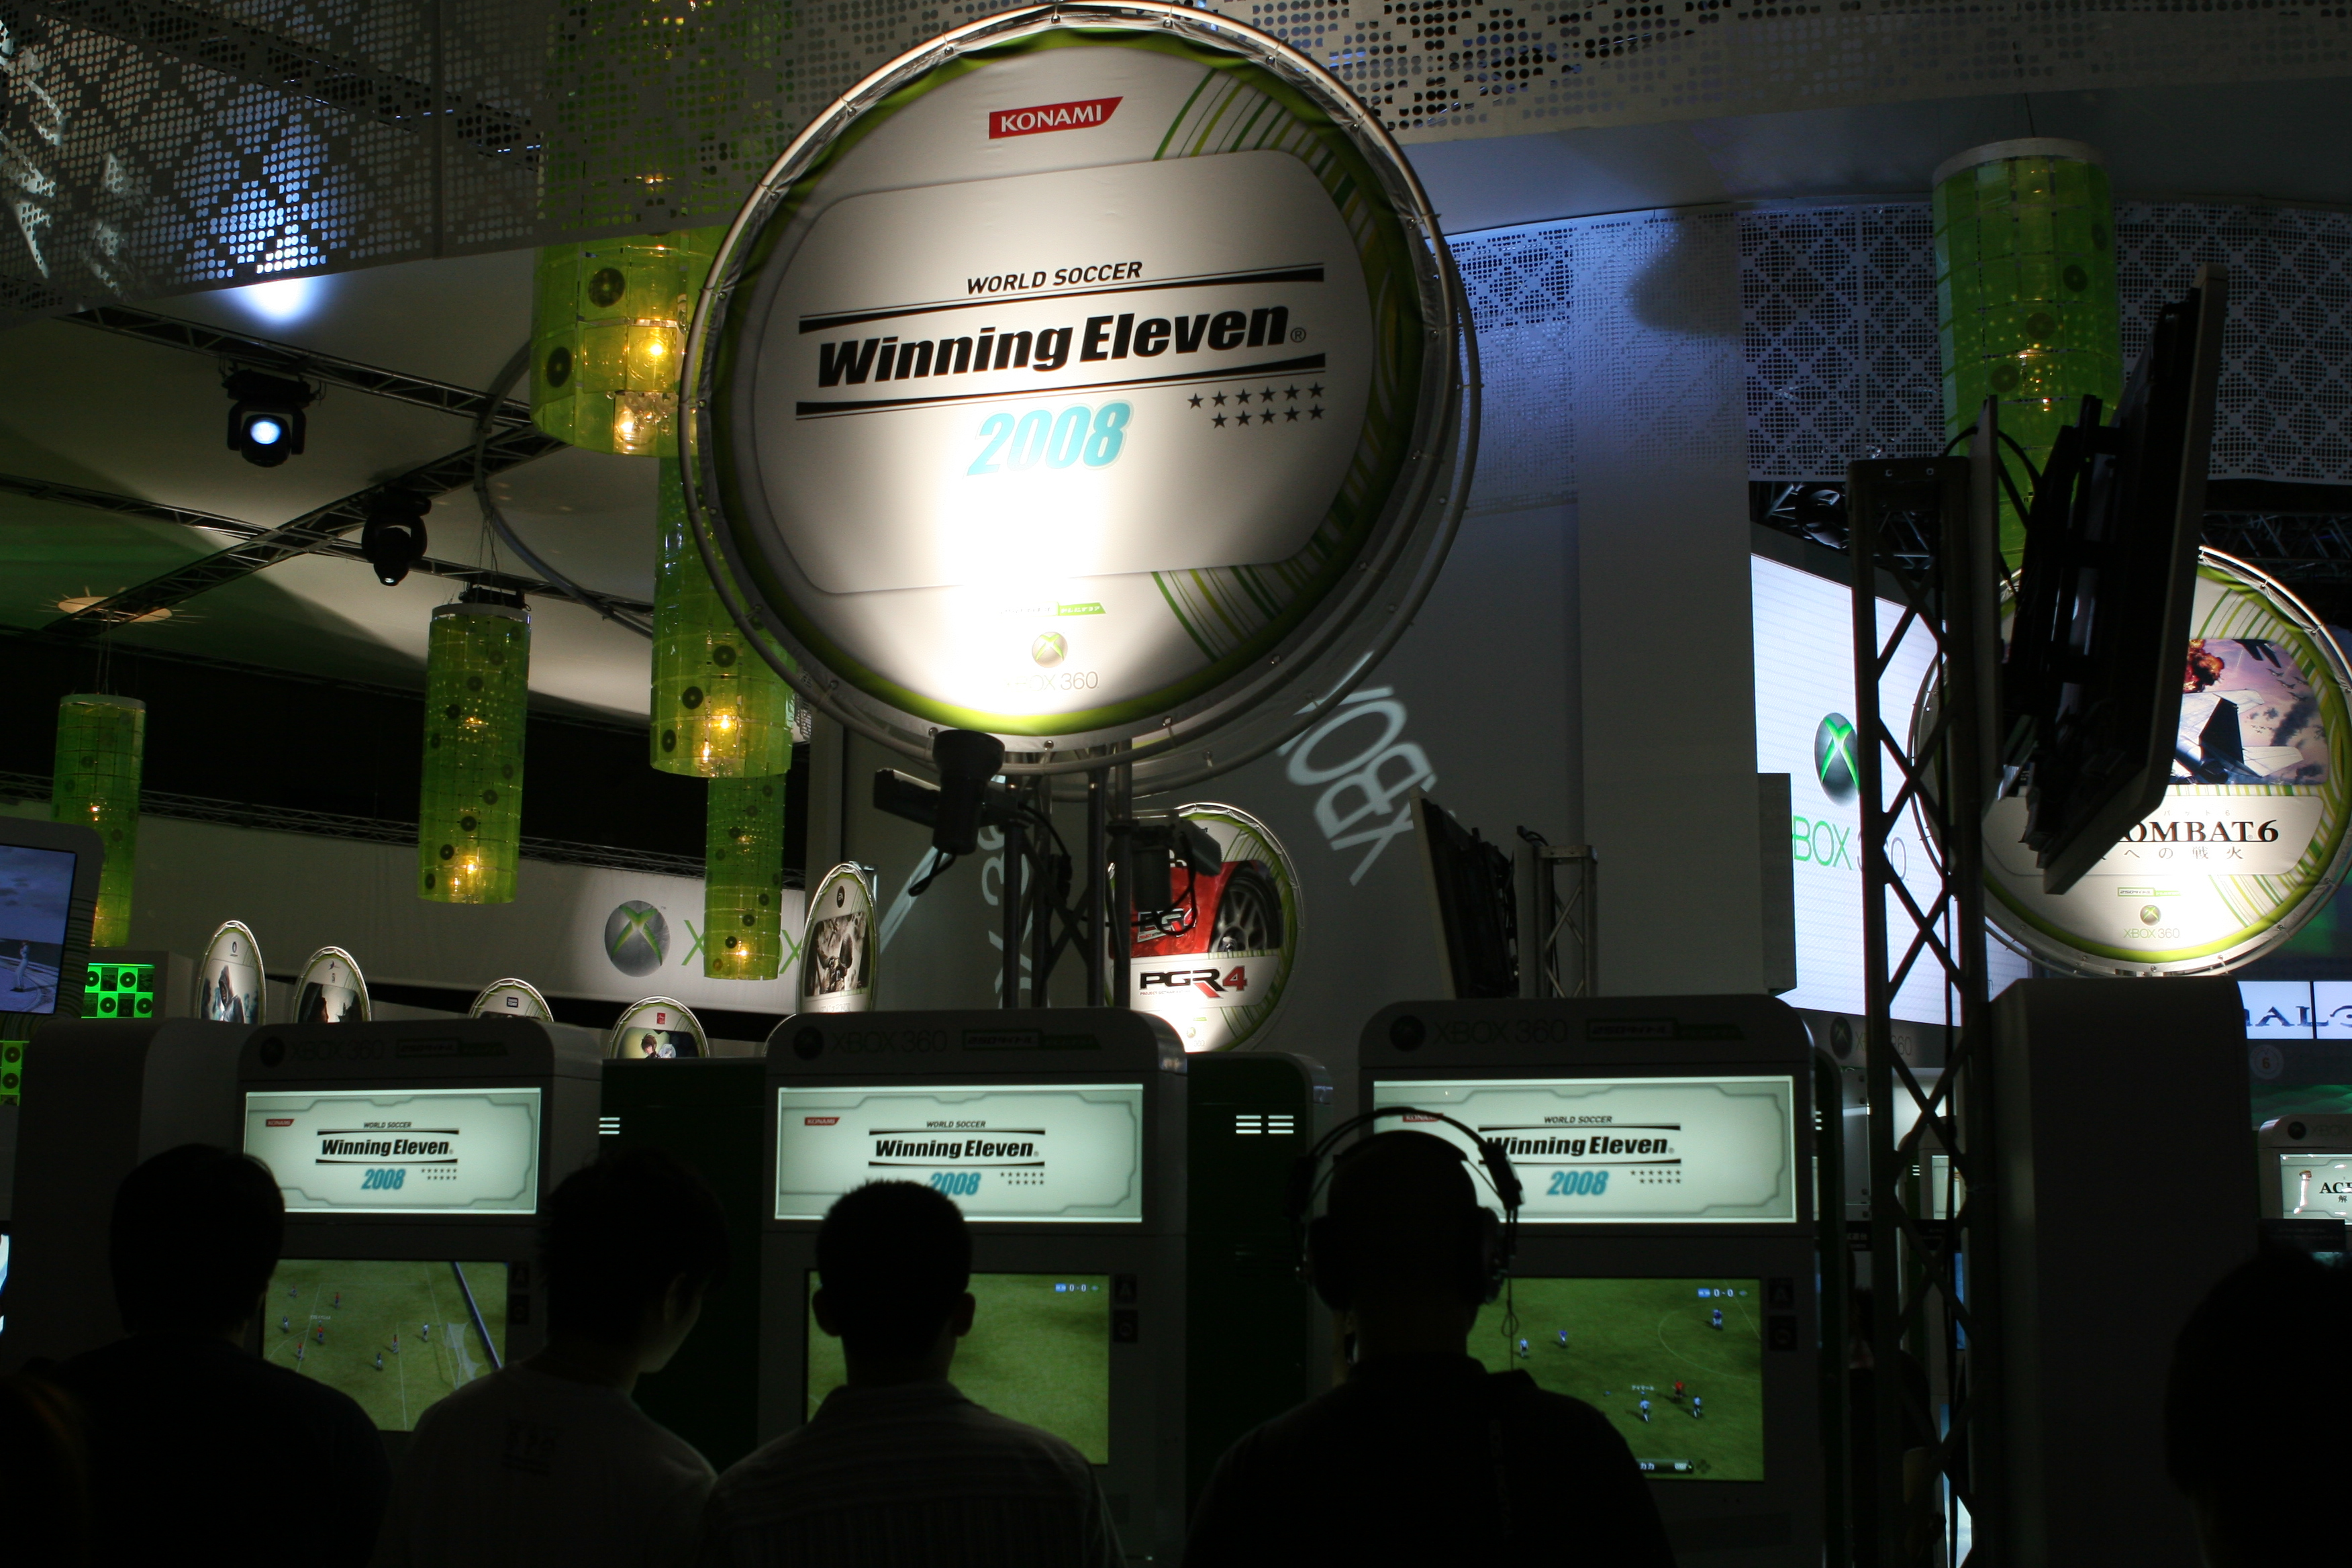 File:Winning Eleven 2008 on Xbox 360 promo, Tokyo Game Show